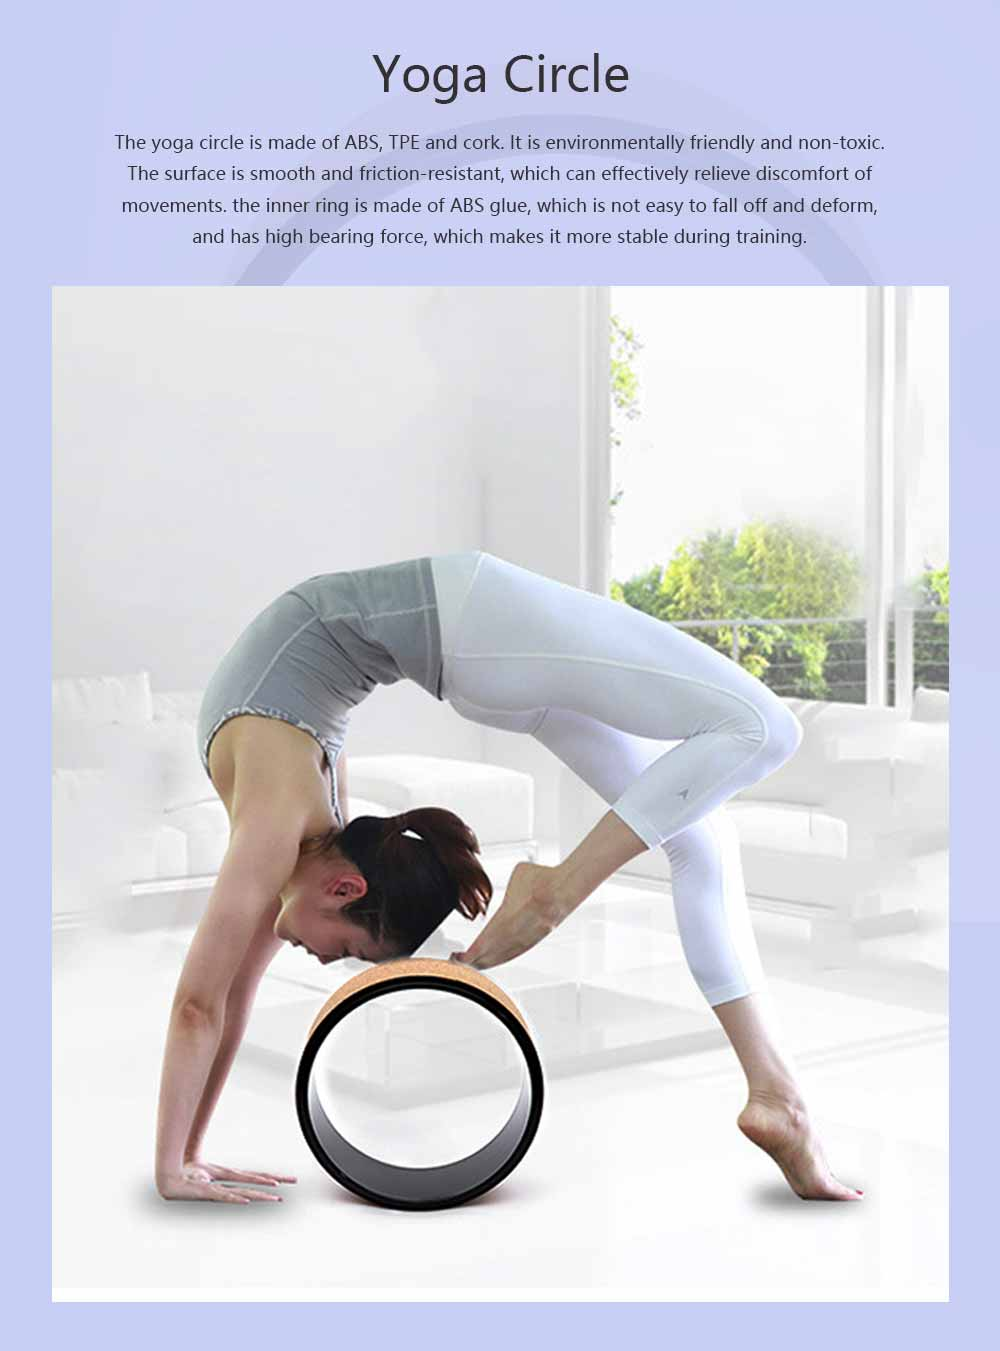 Yoga Training Circle ABS TPE Cork Material Non-toxic Training Roller Strong Bearing Pilates Circle Friction-resistant Massage Wheel 0